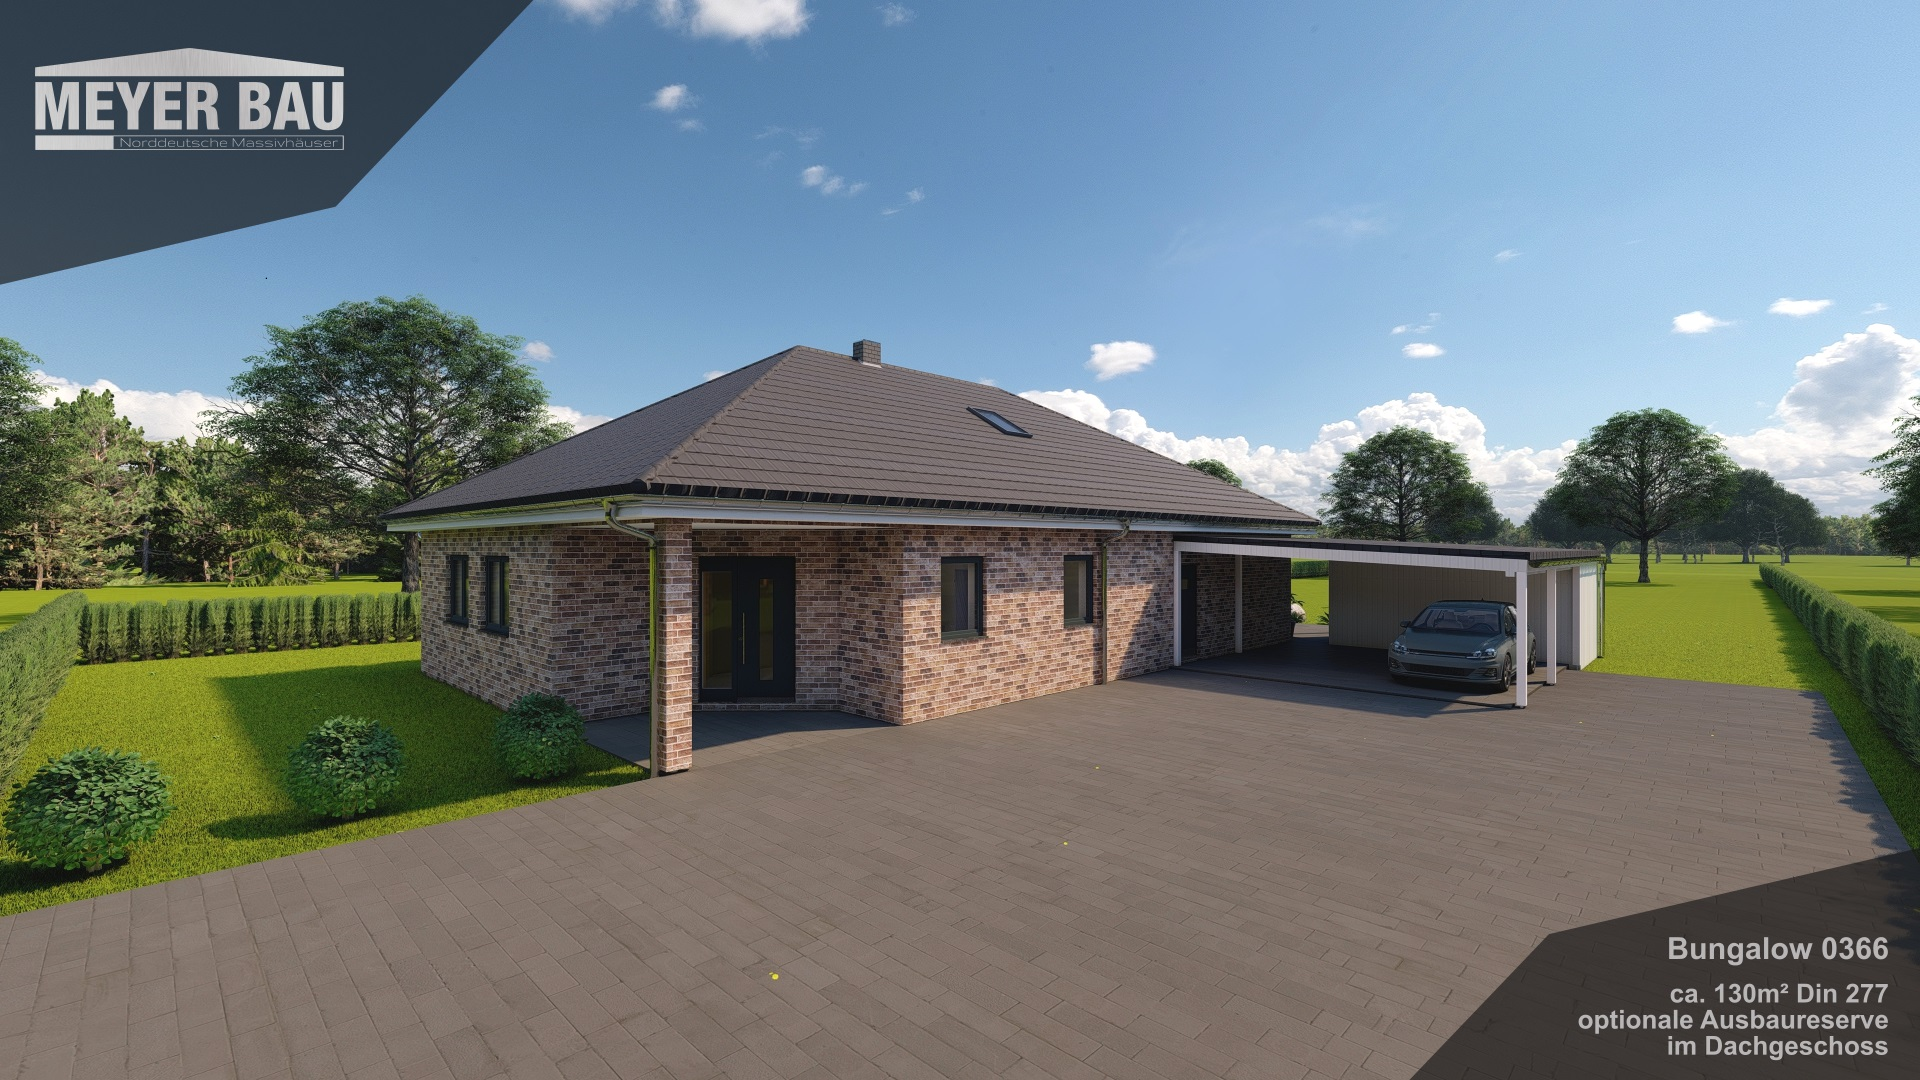 You are currently viewing Bungalow 0366